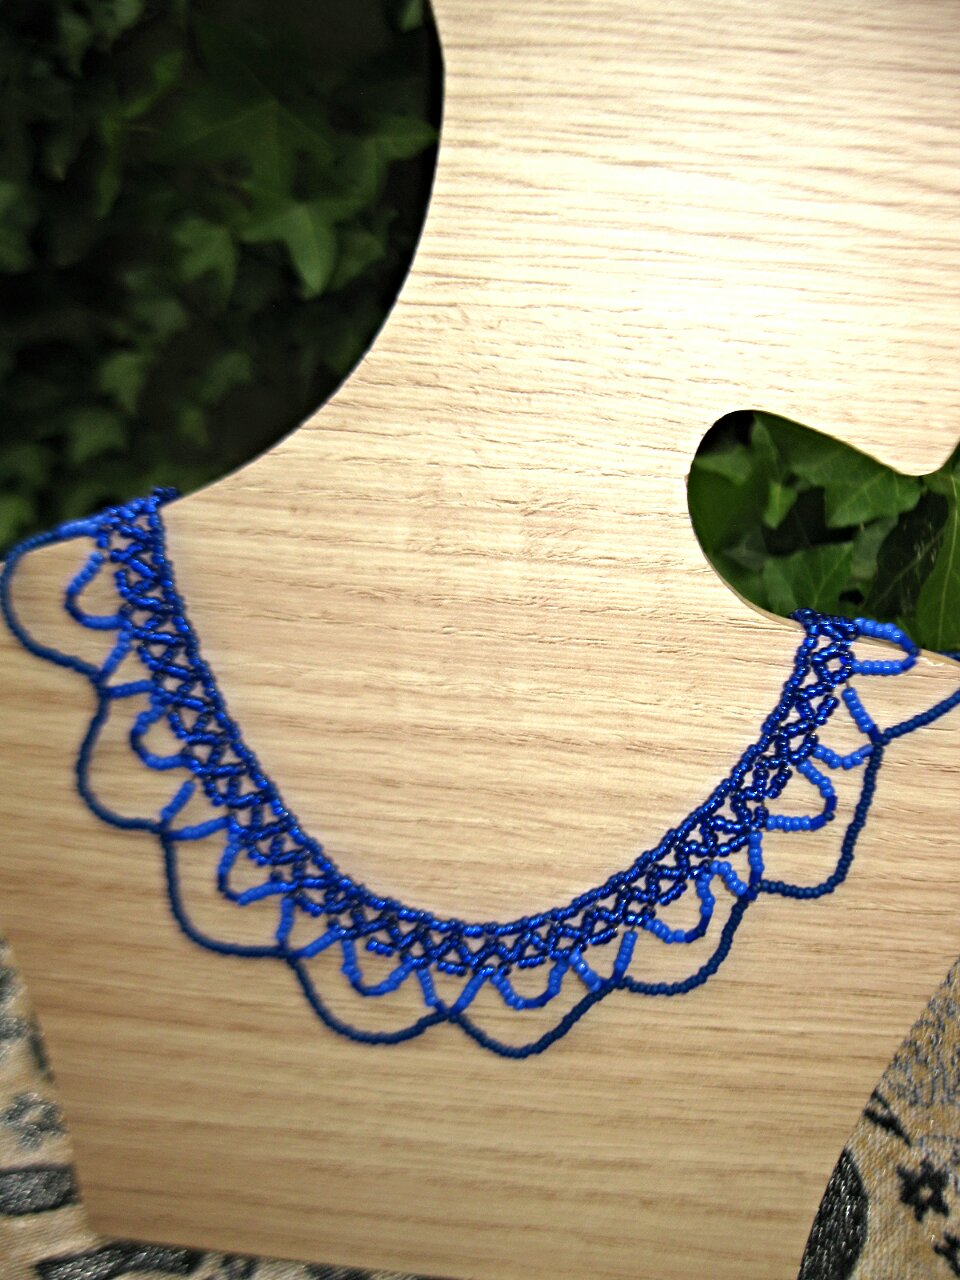 blue-seed-beads-necklace_17021817746_o.jpg